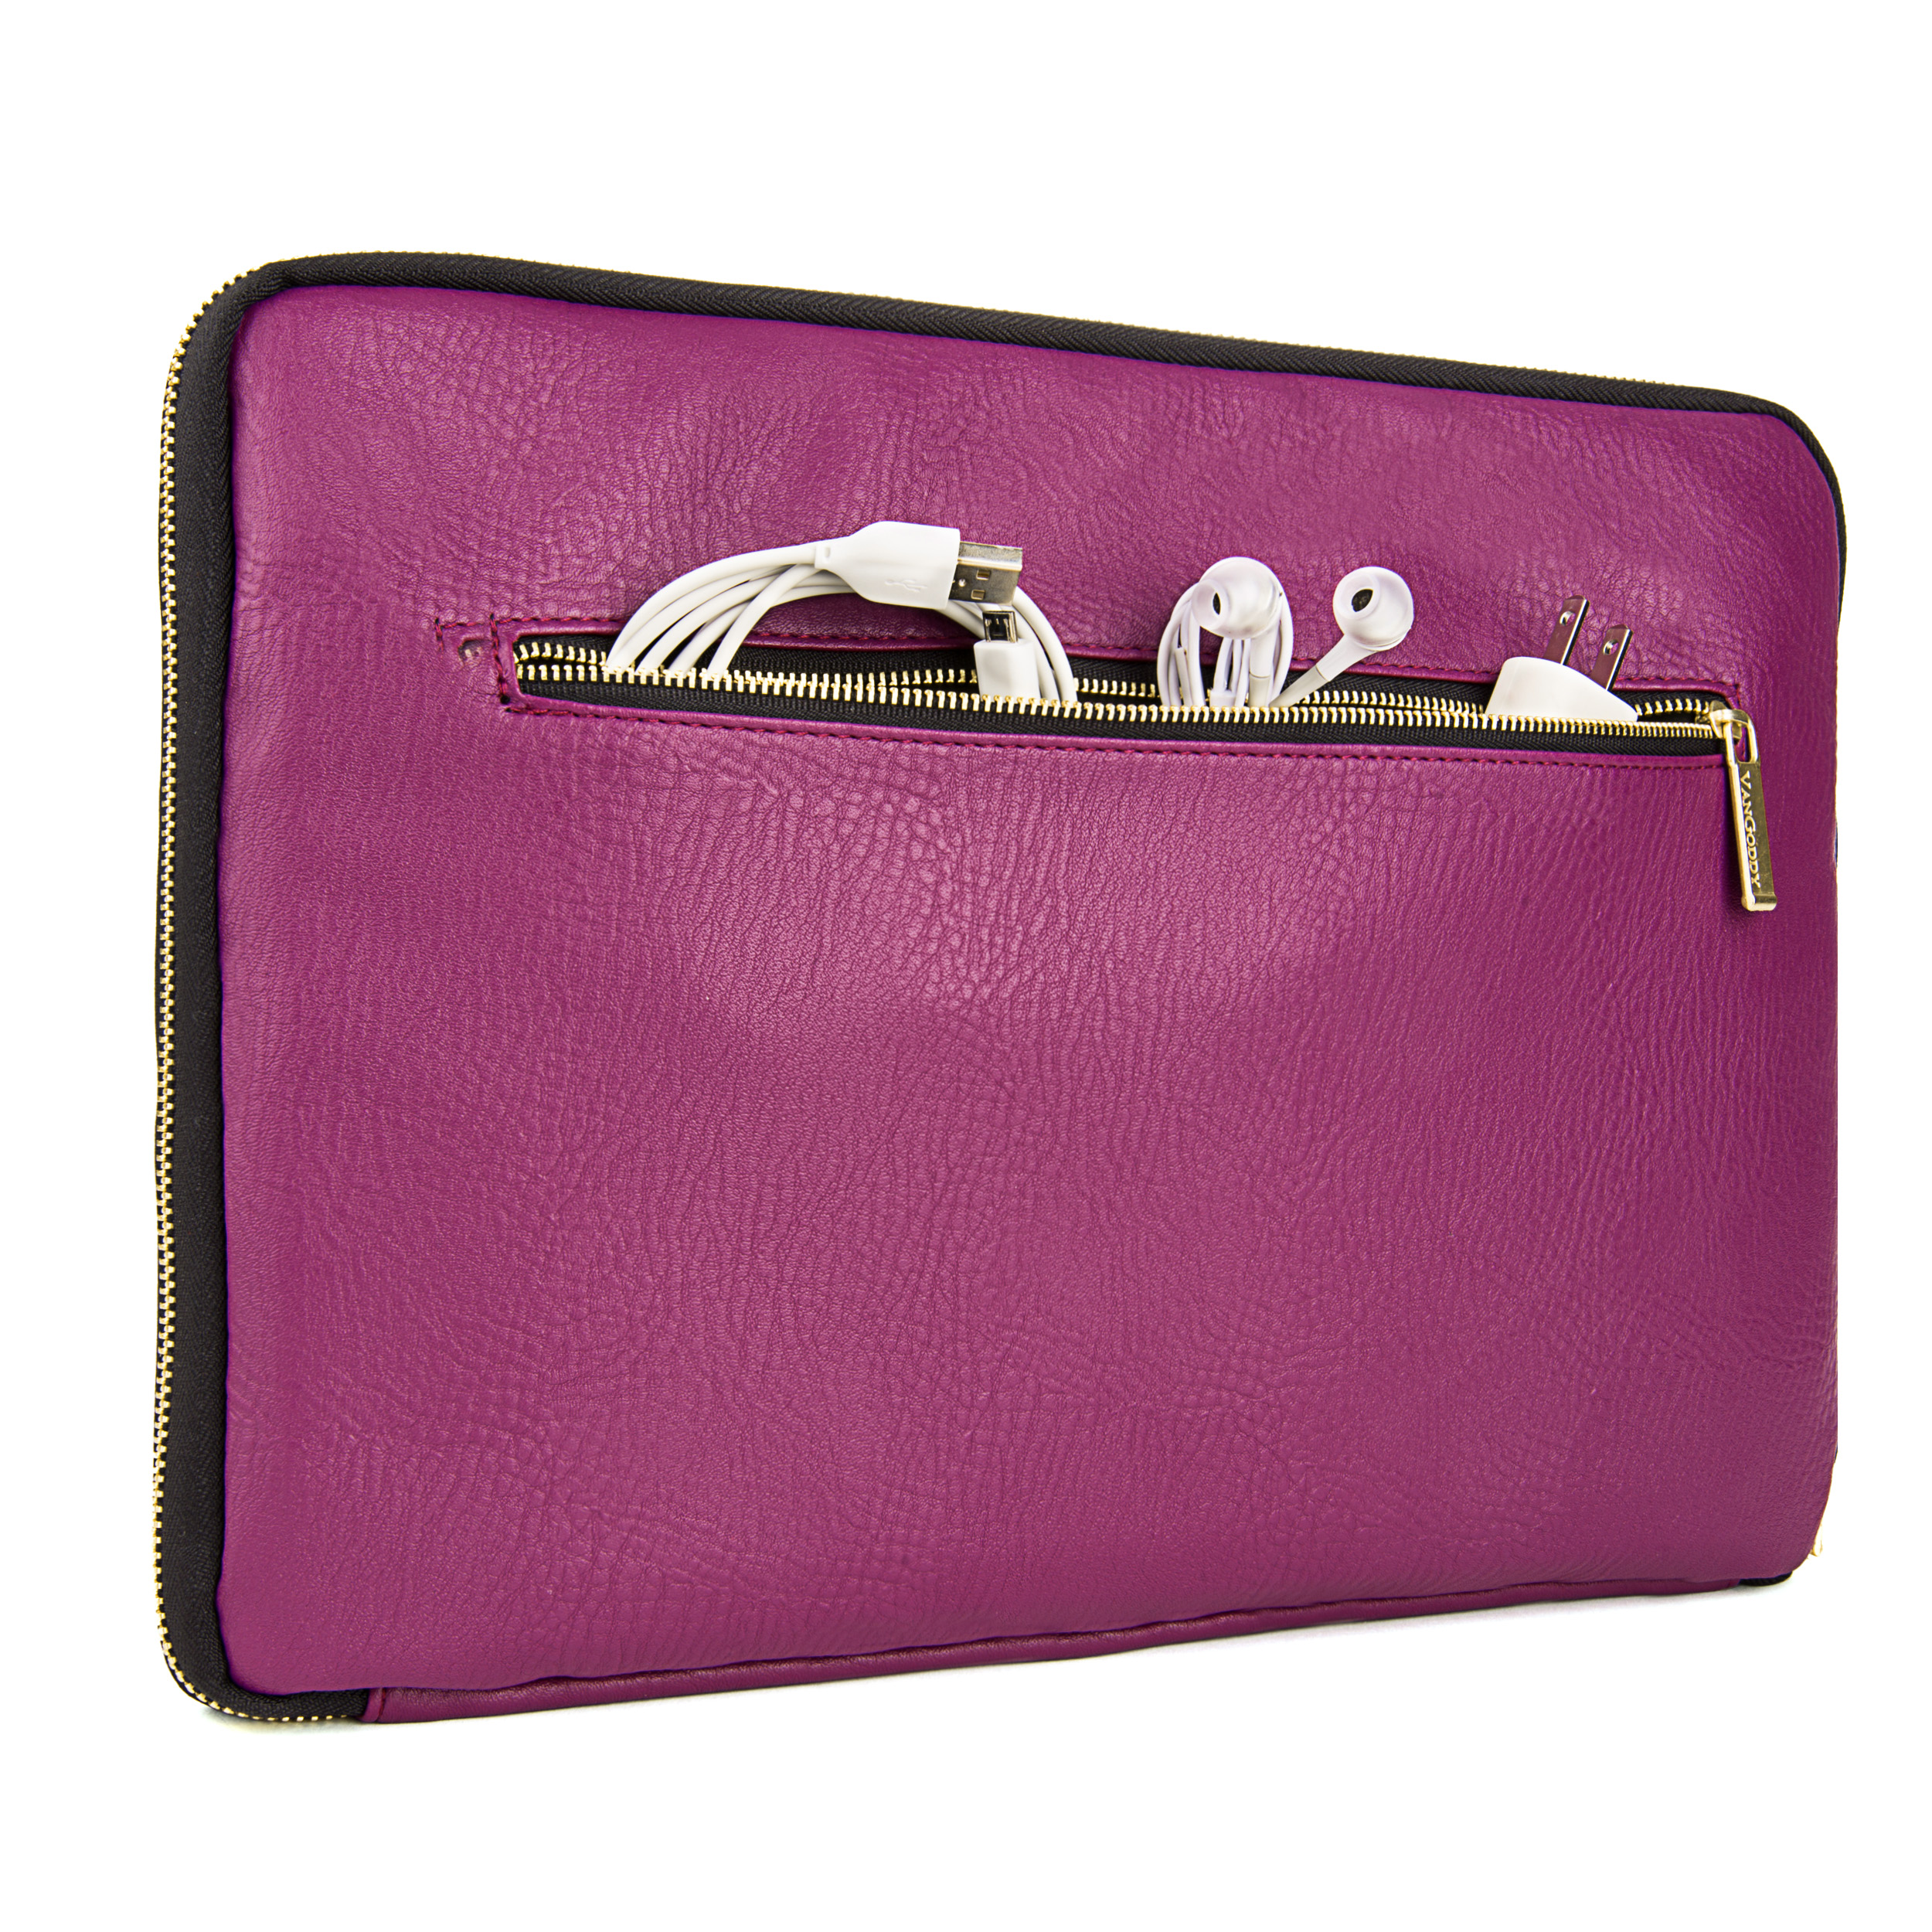 "Irista 15"" Laptop Sleeve  (Purple/Black)"